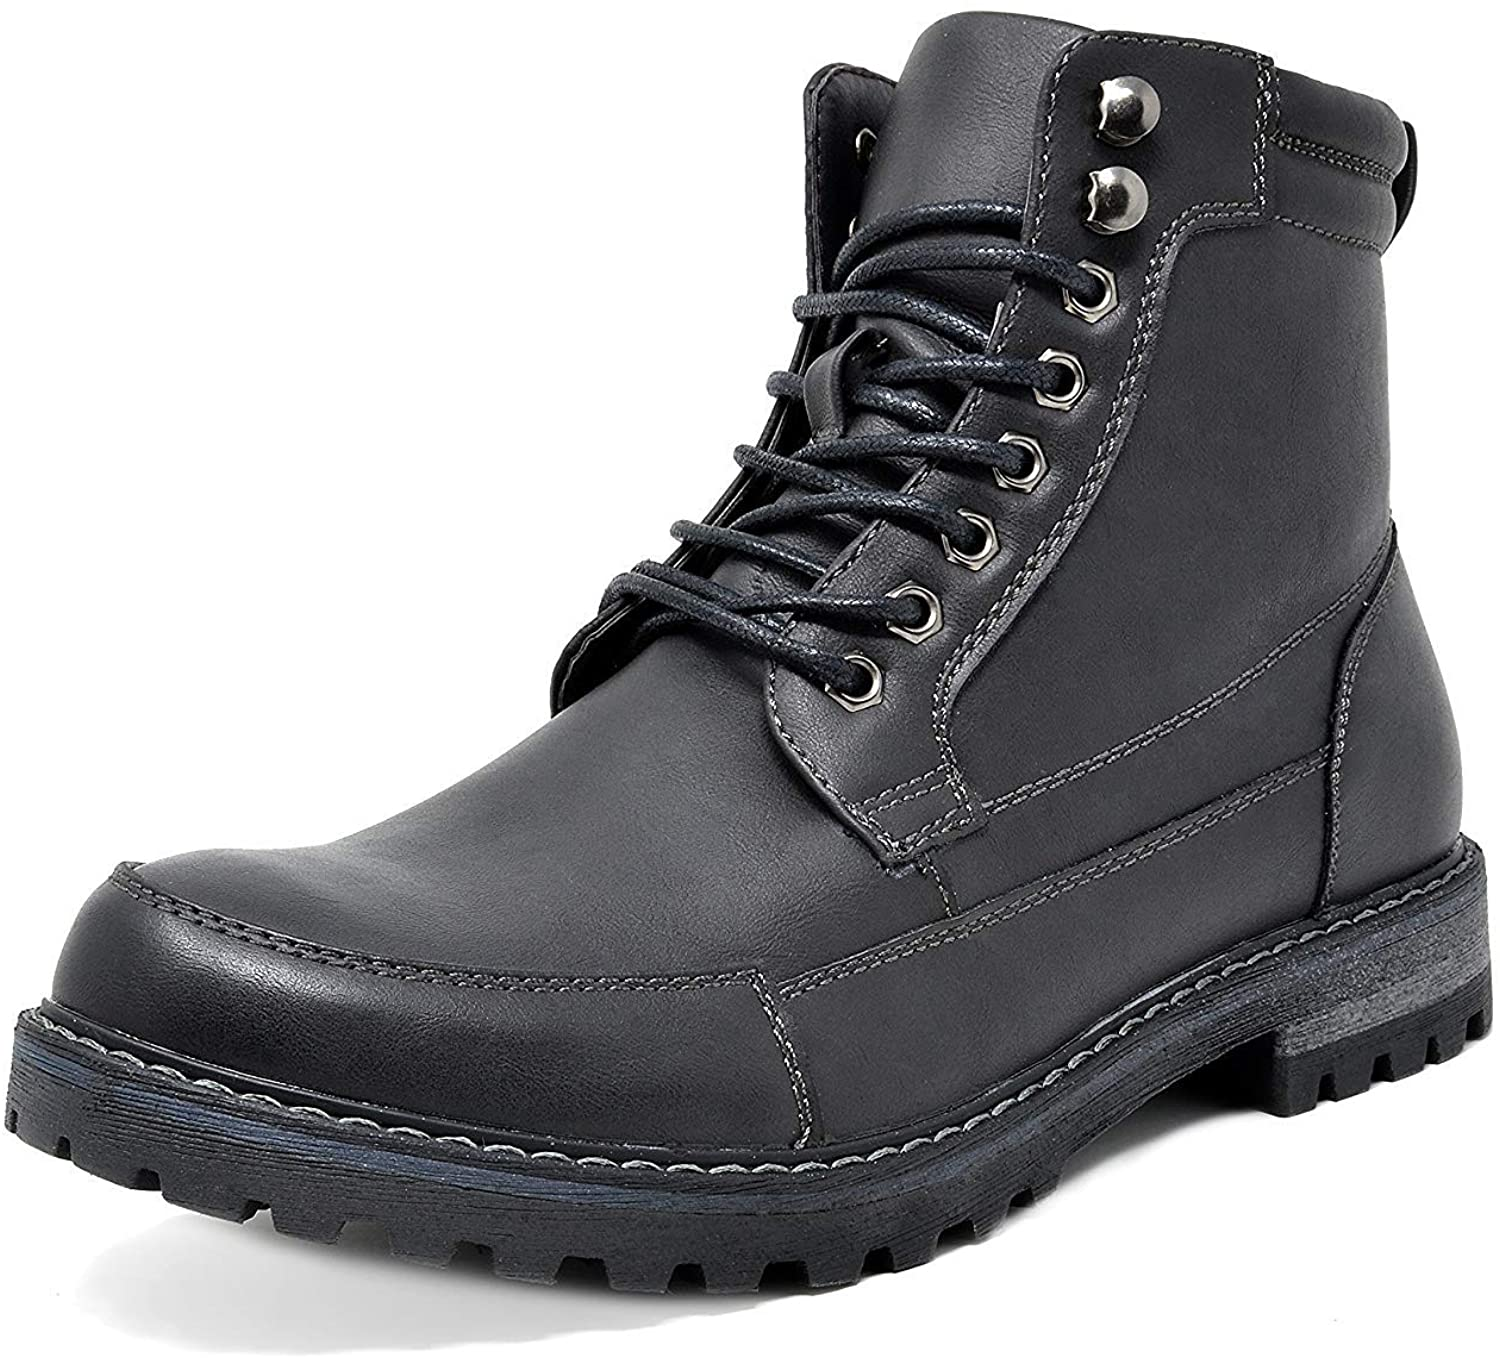 Free shipping New Bruno Marc Manufacturer regenerated product Men's Motorcycle Combat Oxford Lining Boot Fur Warm Z